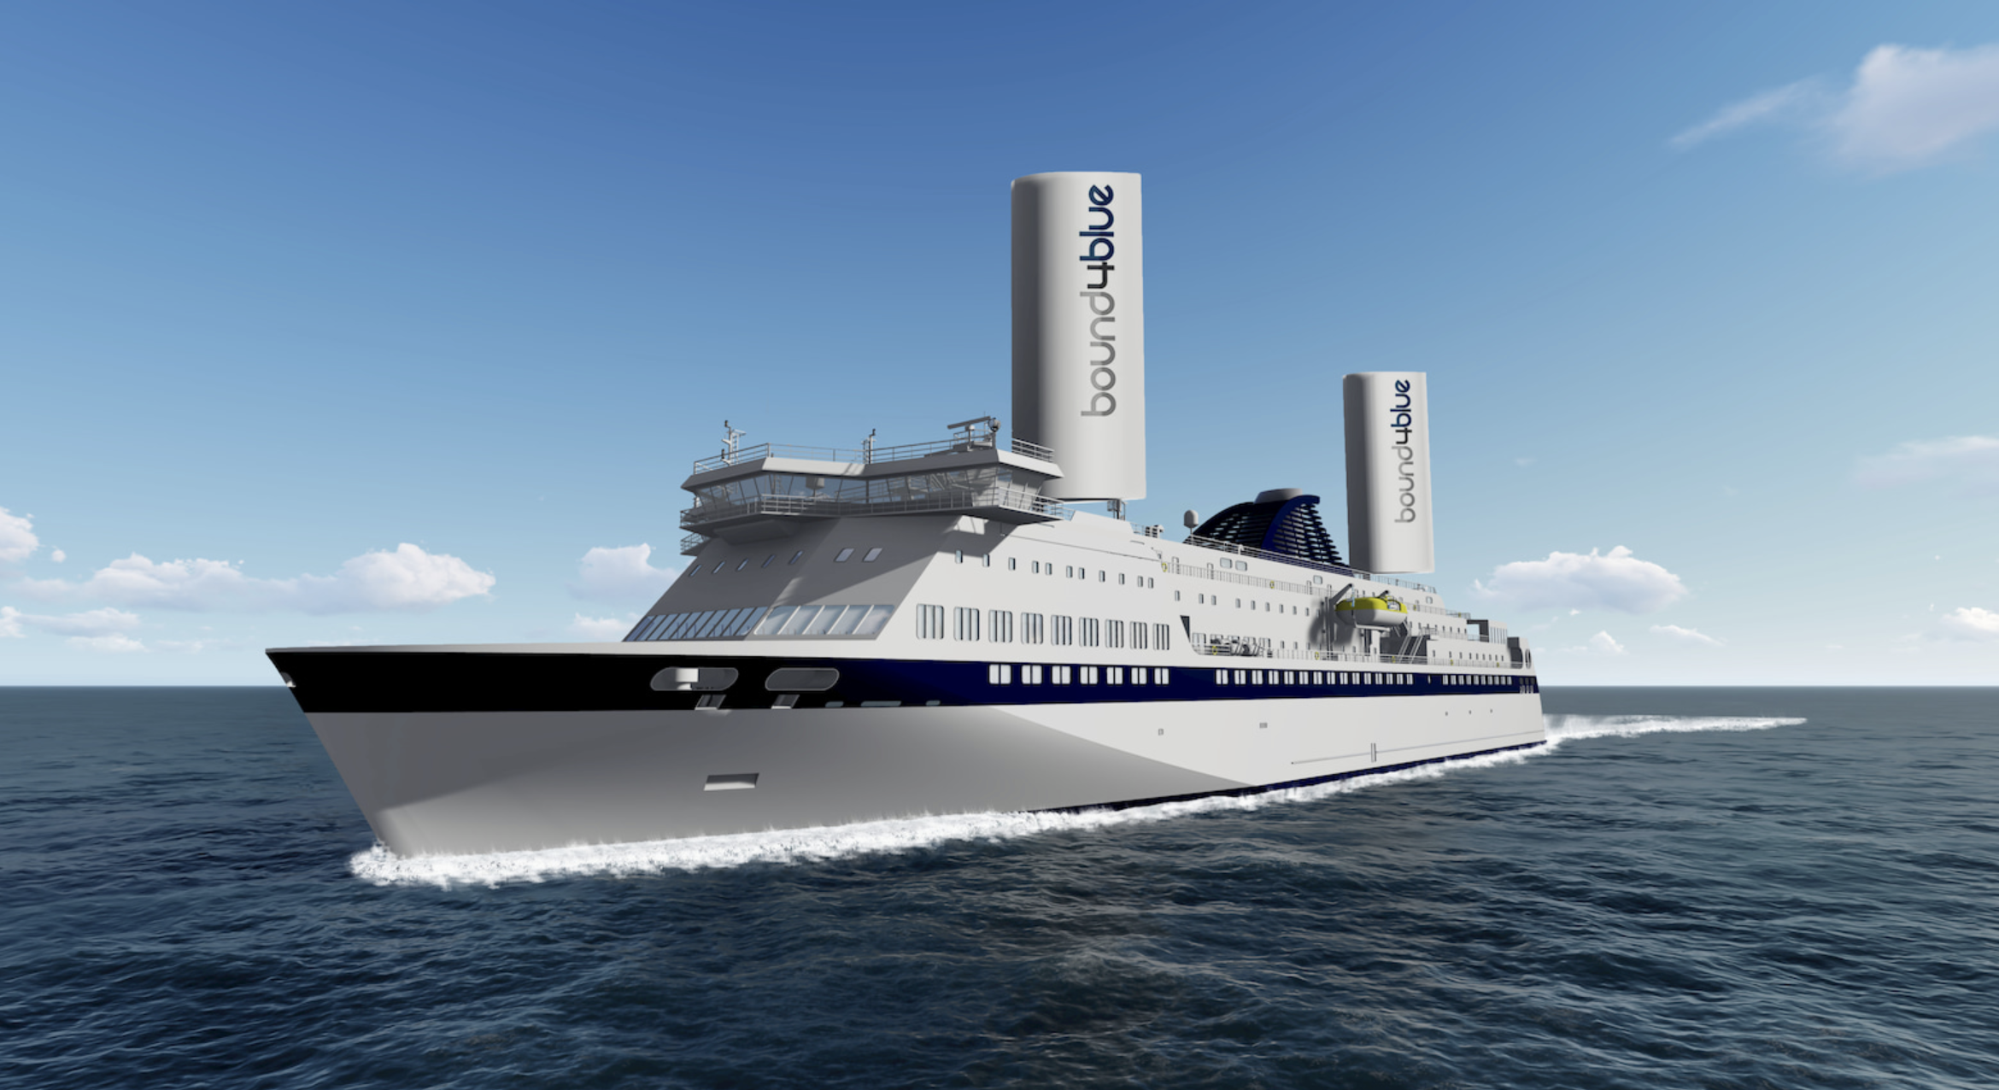 Bound4Blue will fit its first wingsail onto a vessel in 2020